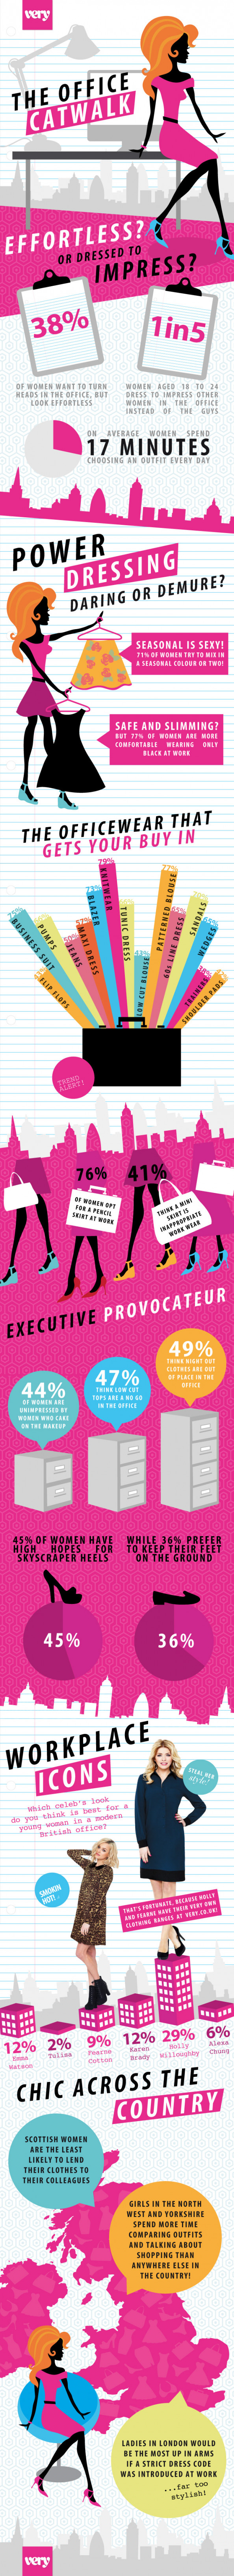 The Office Catwalk Infographic